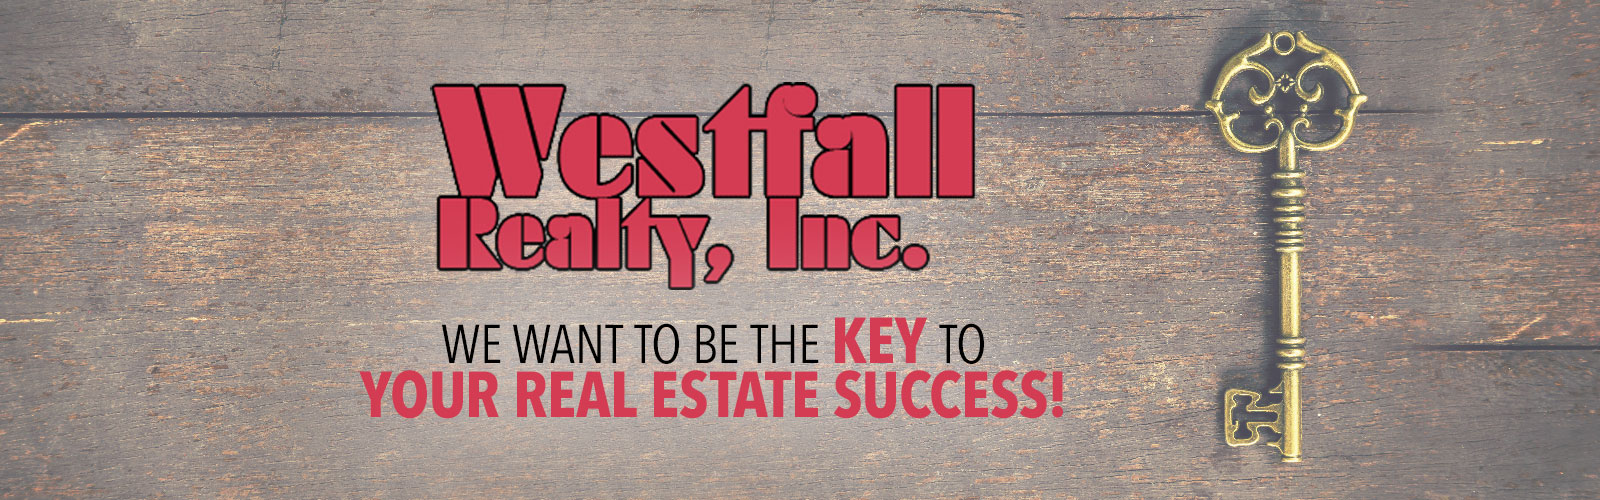 westfall realty logo We want to be the key to your real estate success!